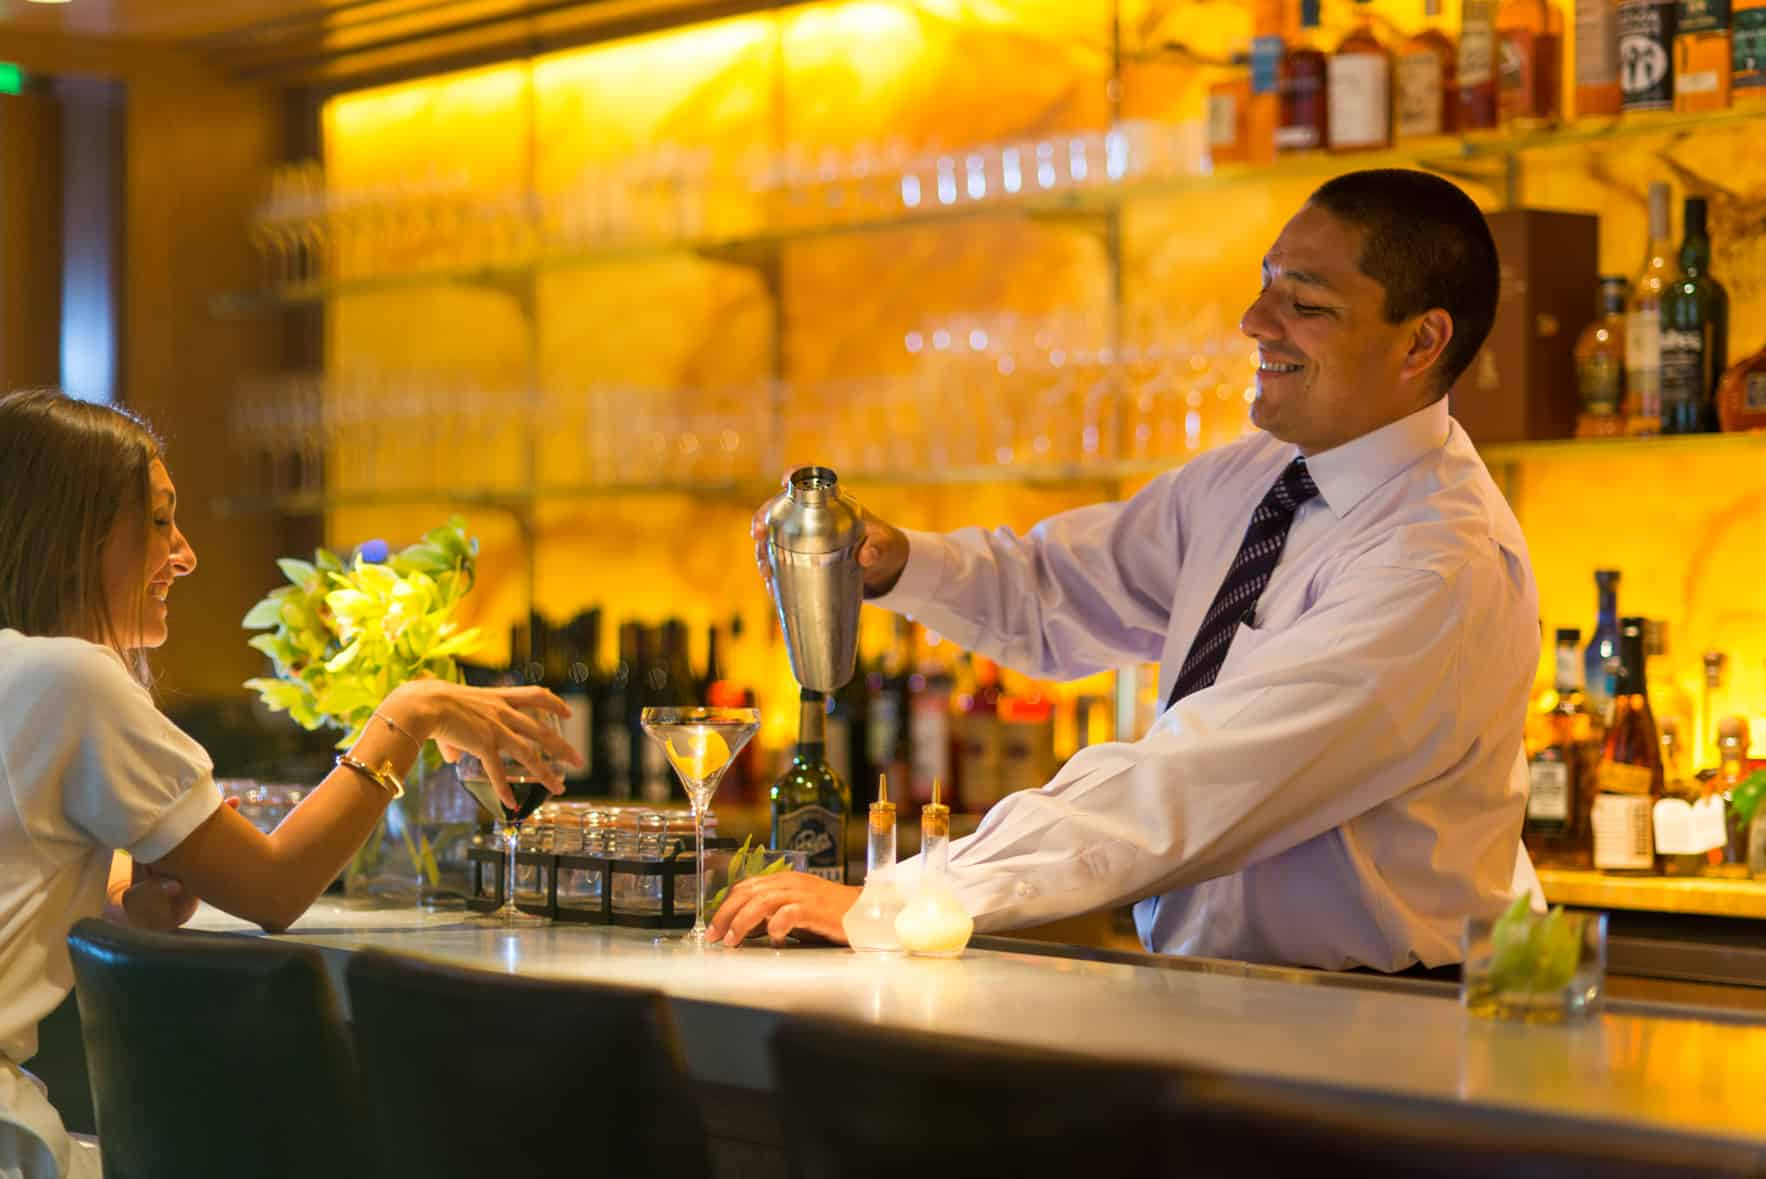 A bartender smiling as he mixes up a drink inside the bar of The Ivy Baltimore.